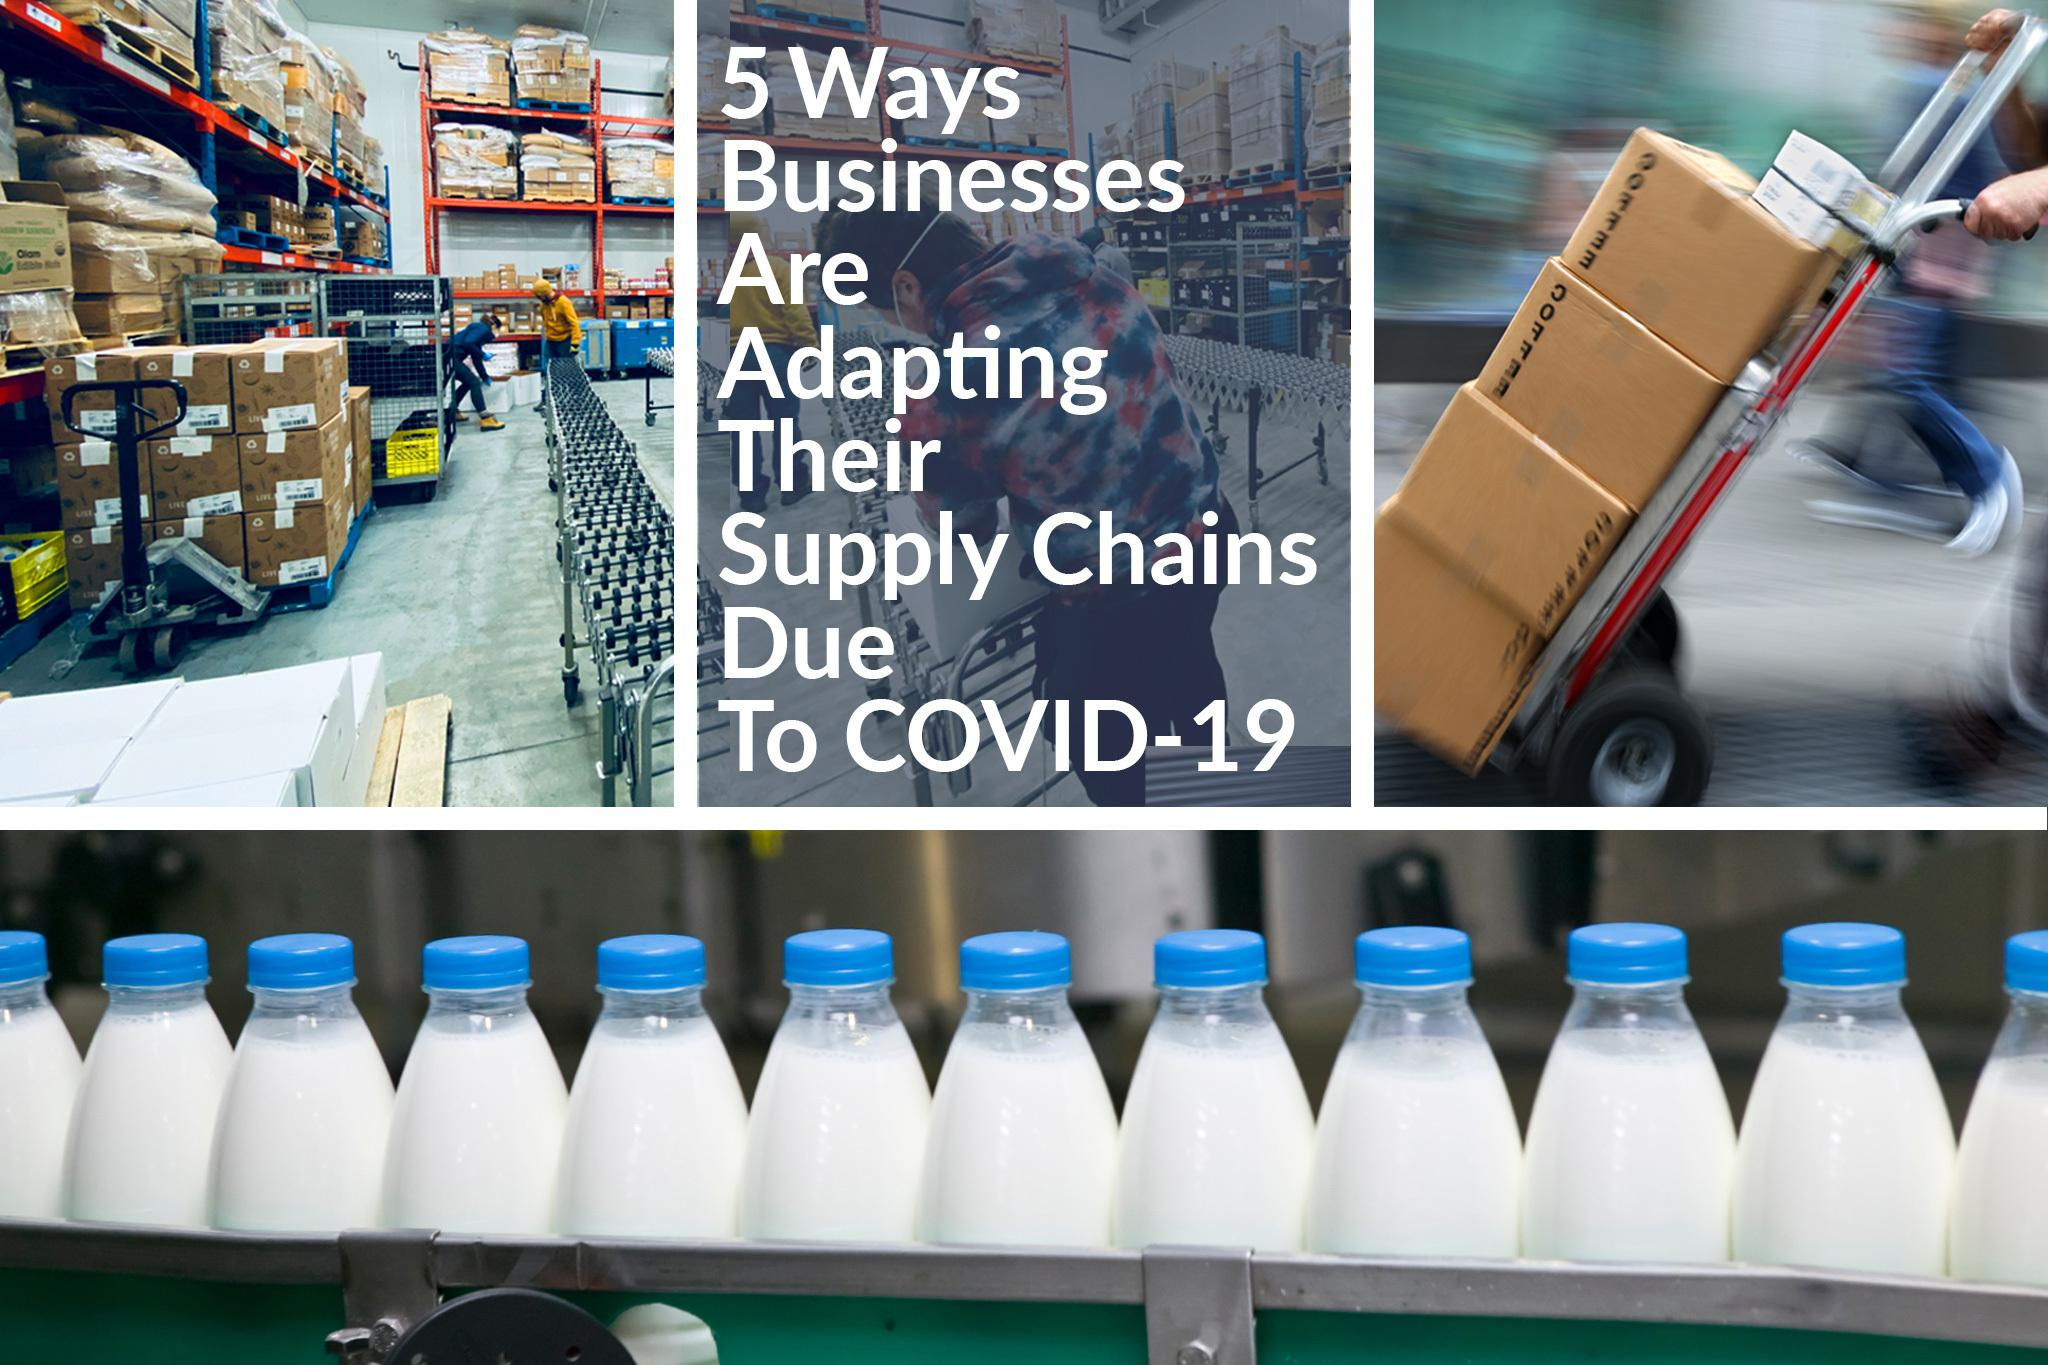 Routeique - 5 Ways Businesses Are Adapting Their Supply Chains Due To COVID-19